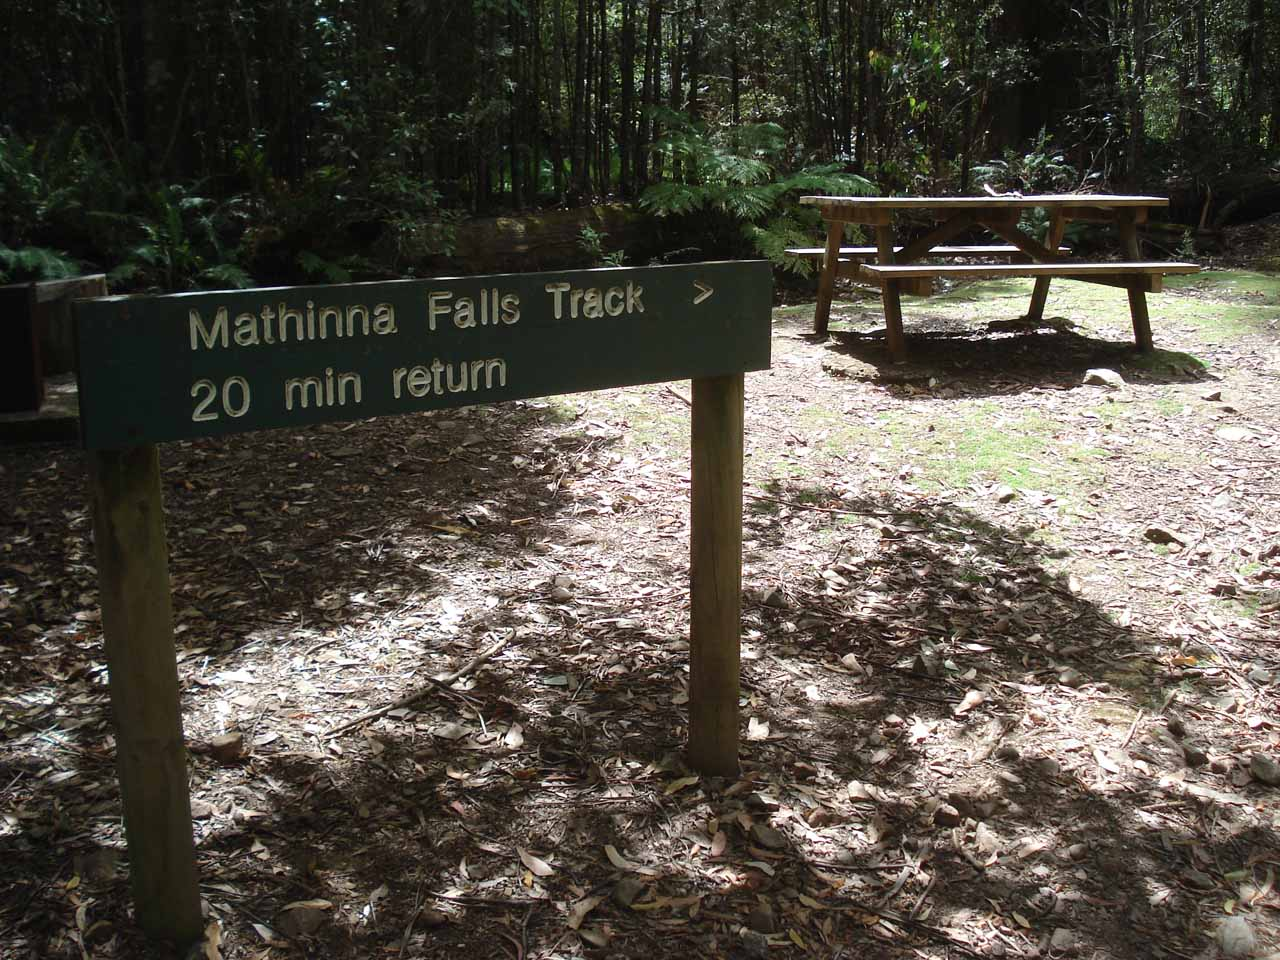 The car park for Mathinna Falls